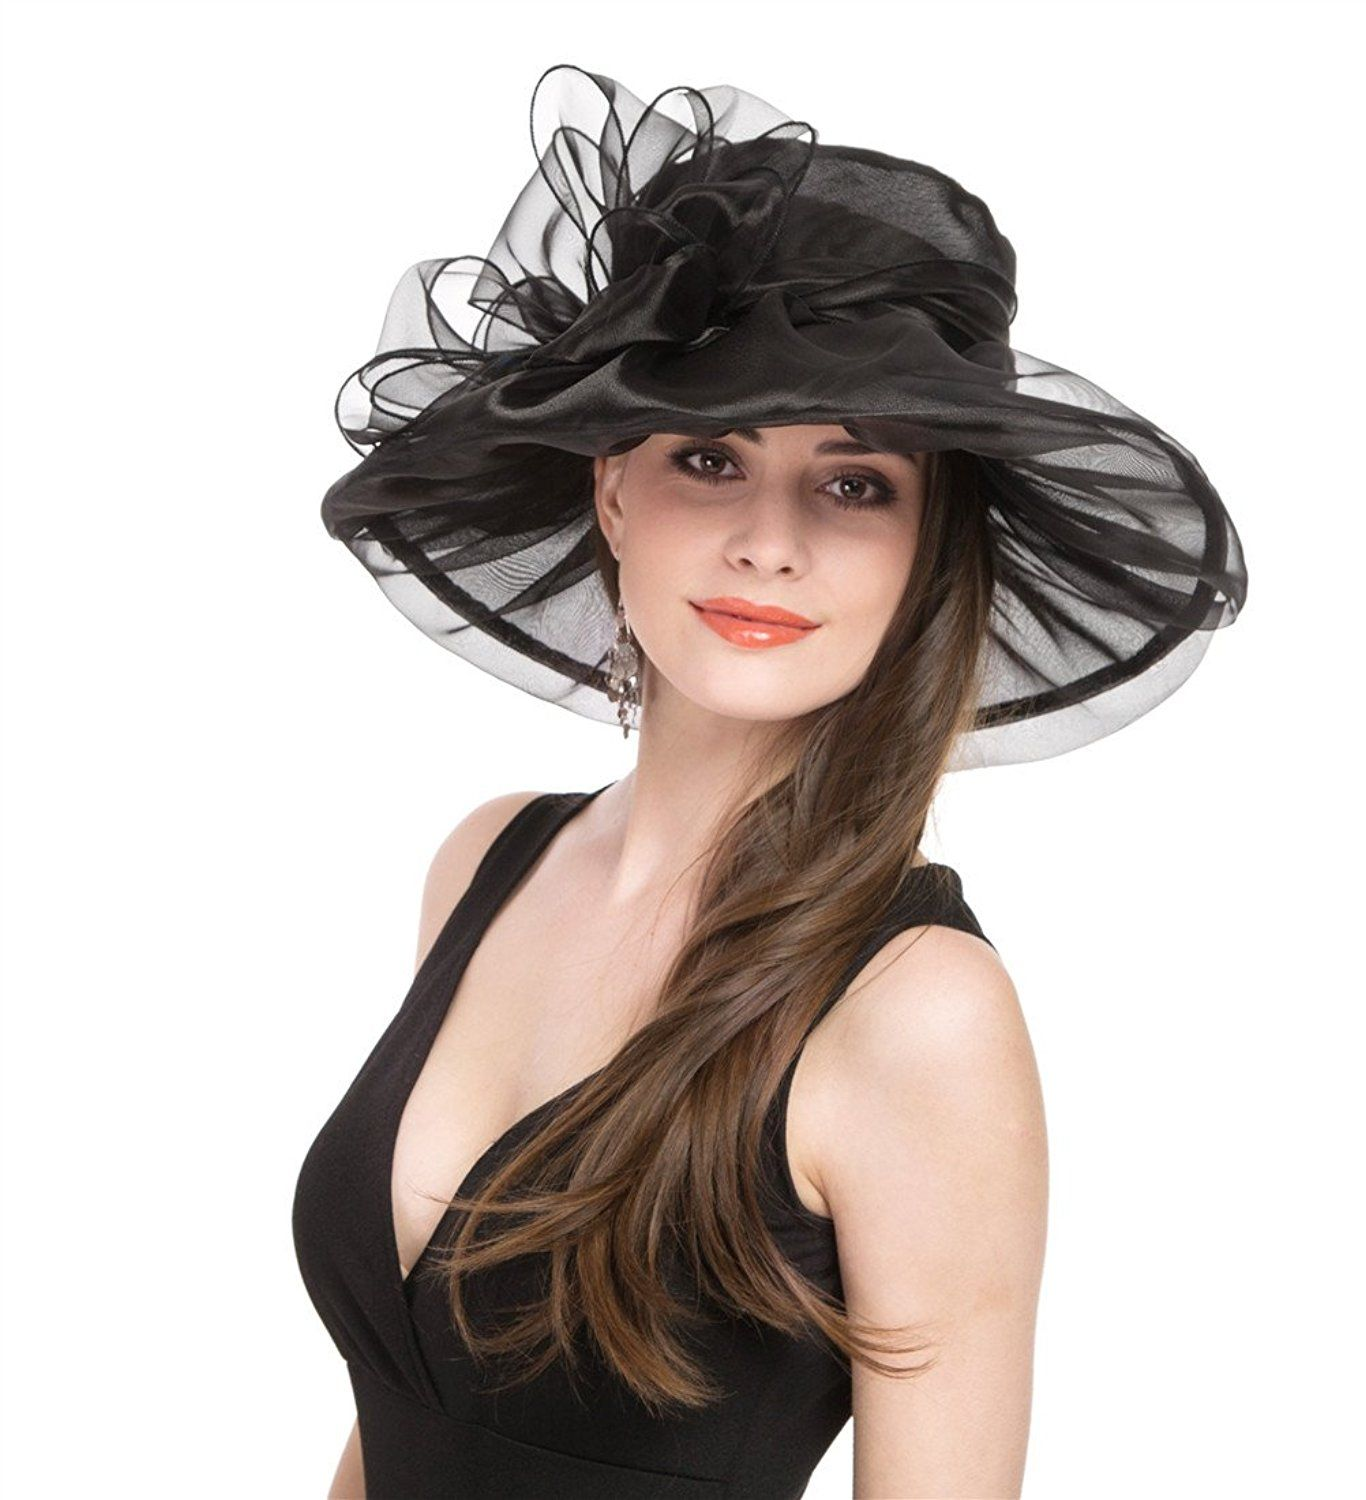 Lucky Leaf Women Kentucky Derby Church Cap Wide Brim Summer Sun Hat for Party